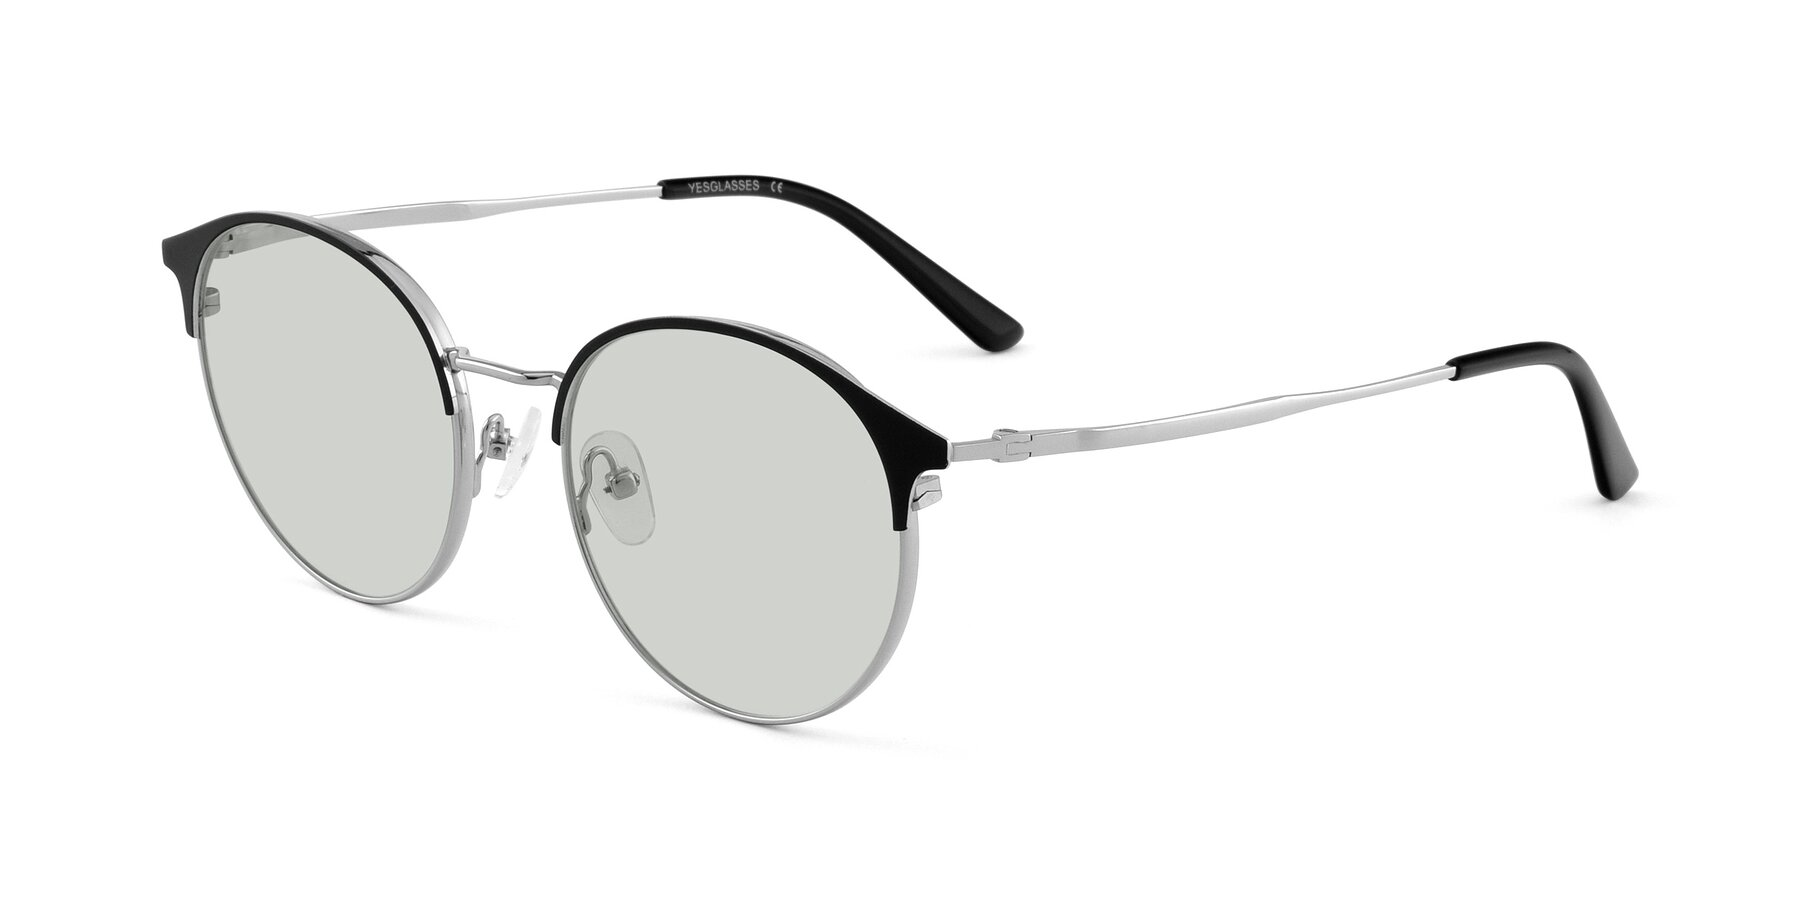 Angle of Berkley in Black-Sliver with Light Green Tinted Lenses